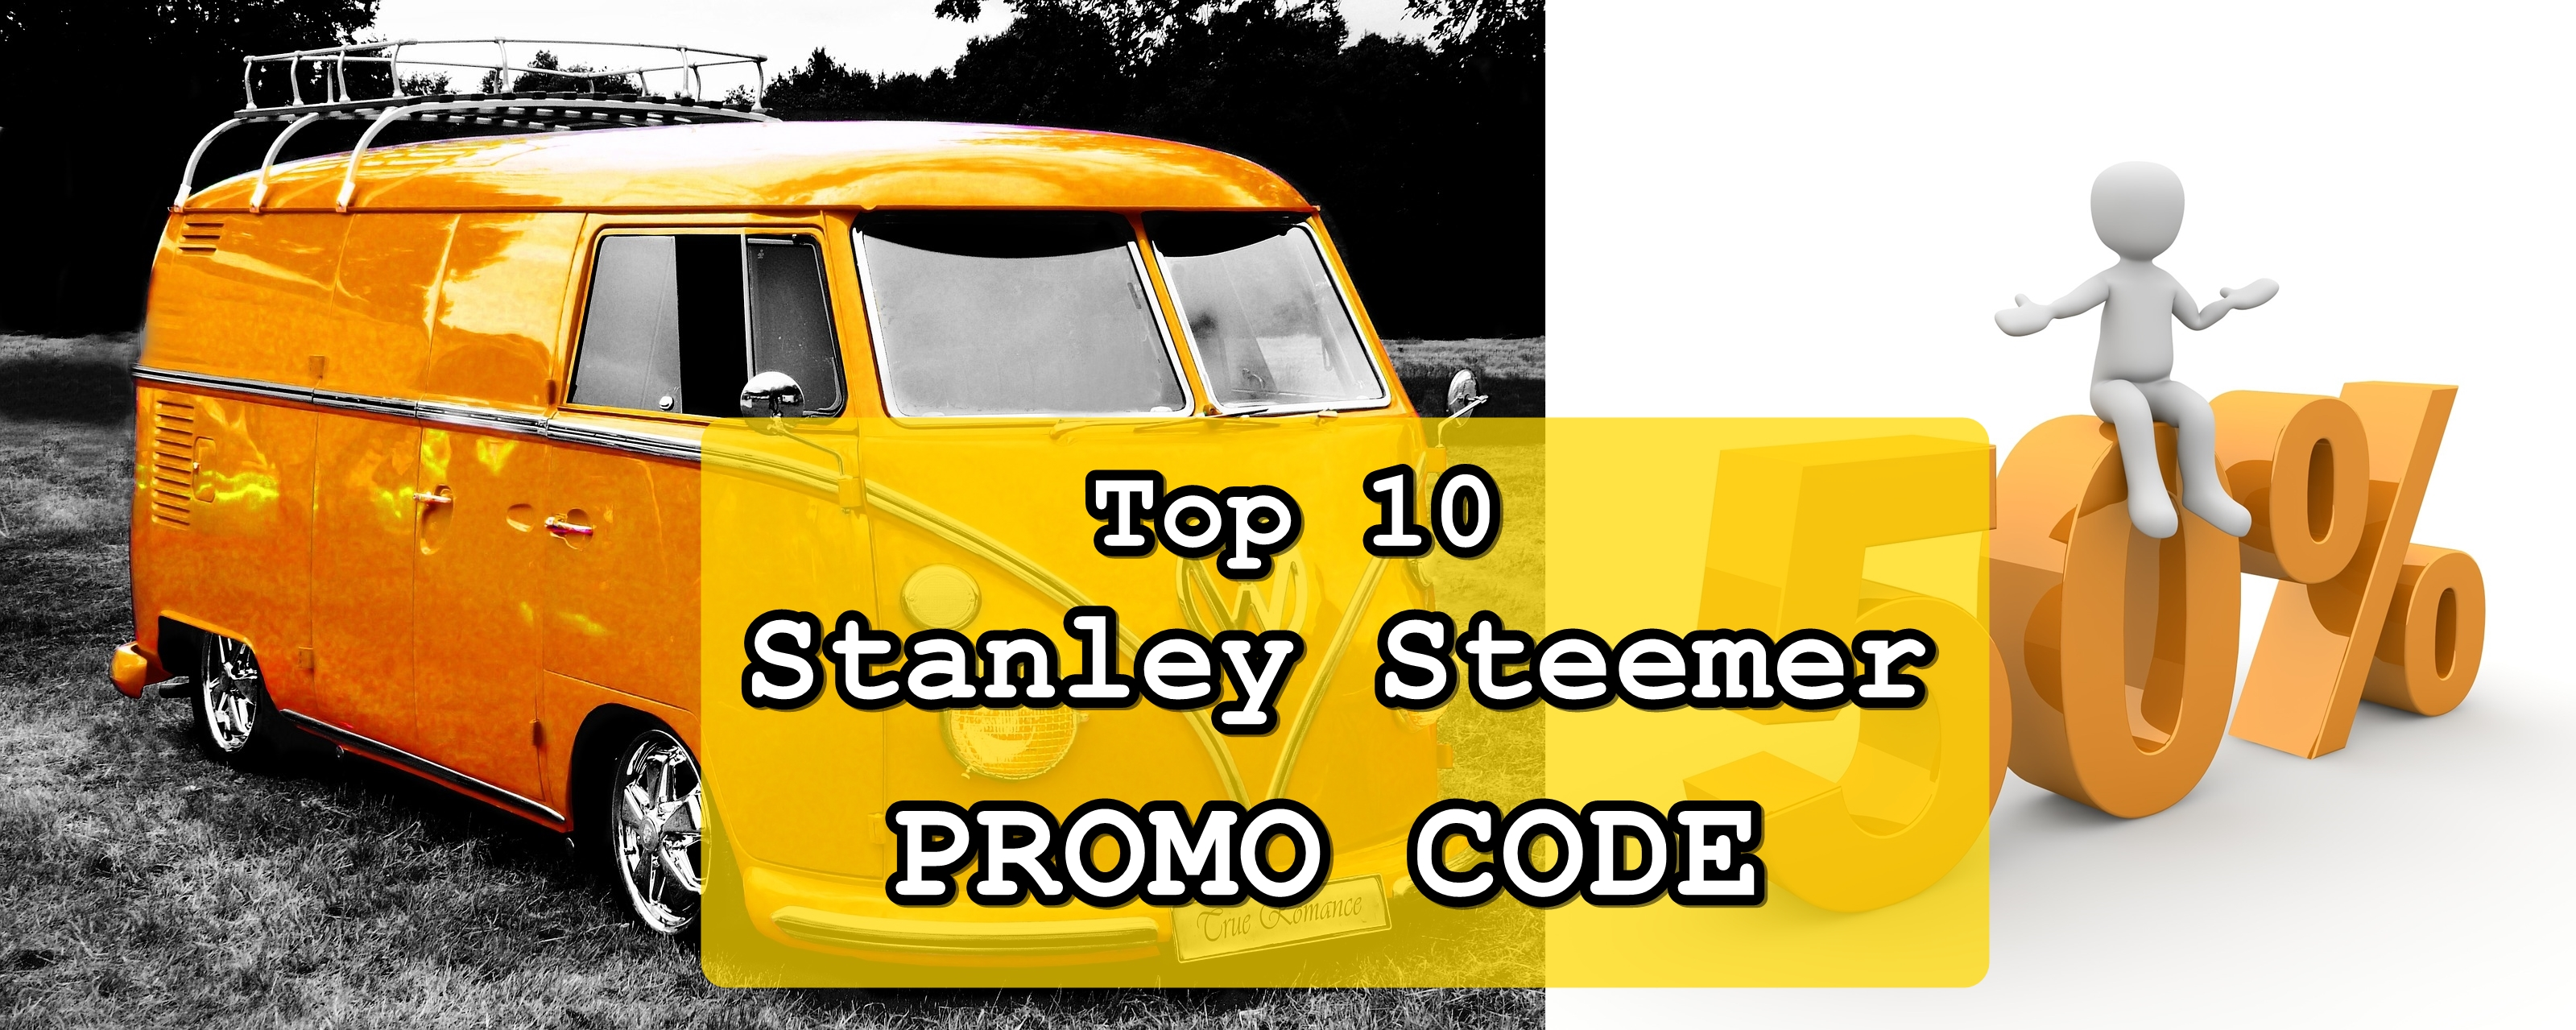 graphic about Stanley Steemer Coupon Printable called Stanley Steemer Coupon codes Deals - Ultimate Business Cleaner